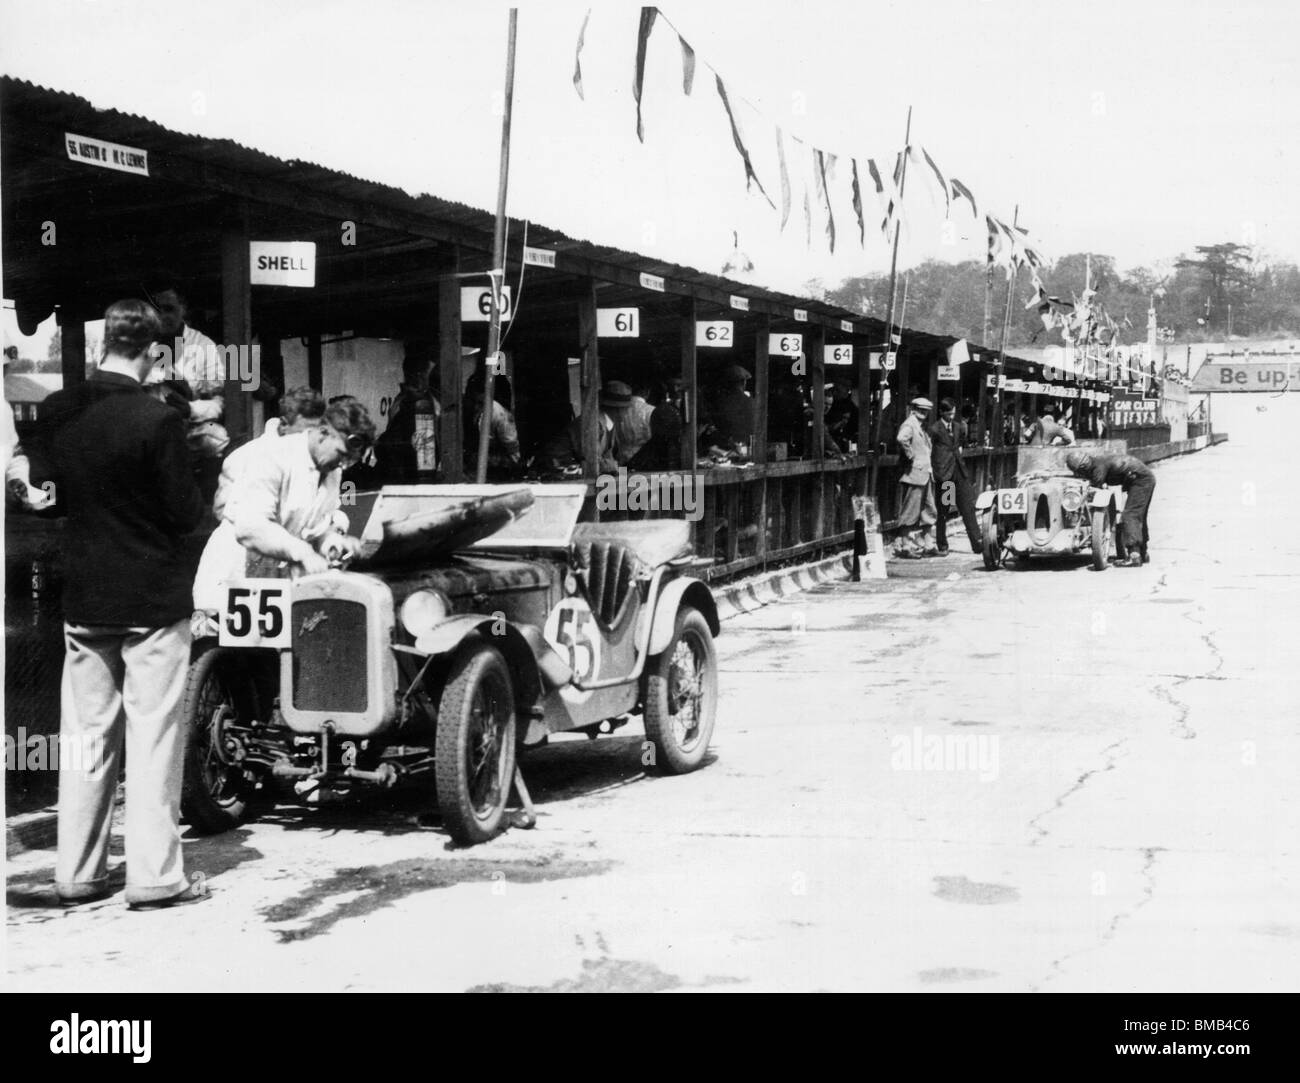 Austin 7 Ulster Works in the pits at Brooklands at the Double 12 meeting, May 1930 - Stock Image